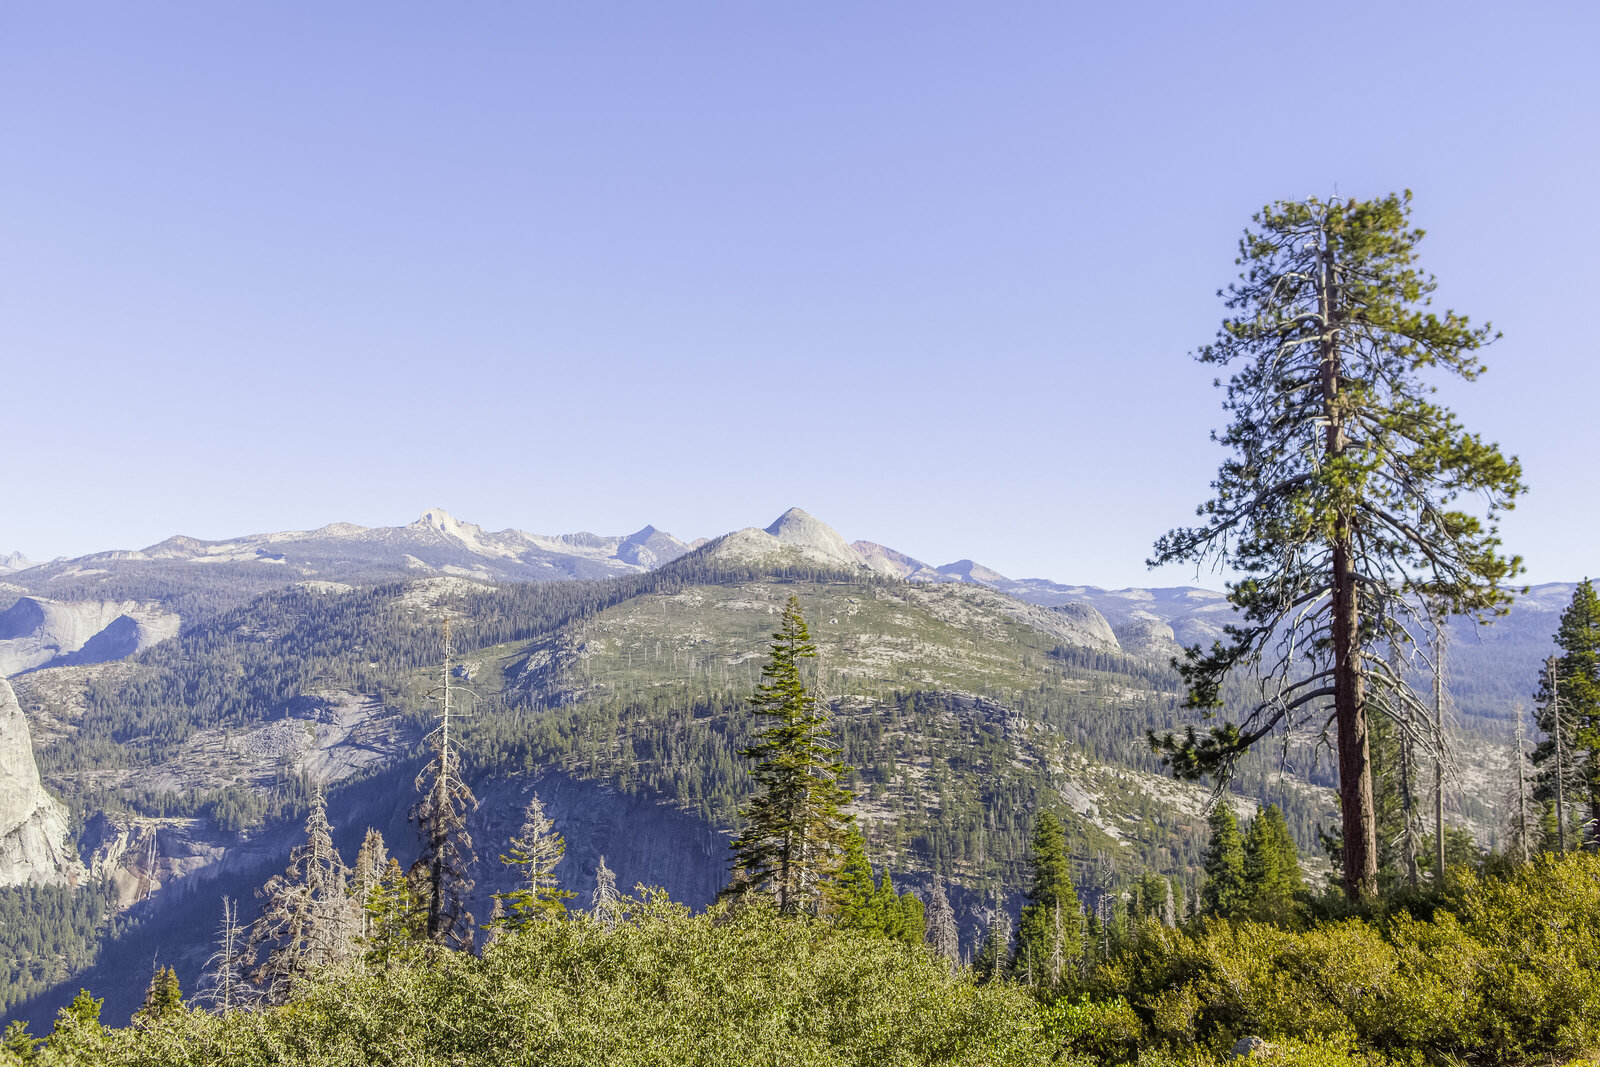 080-KBP-Yosemite-National-Park-003